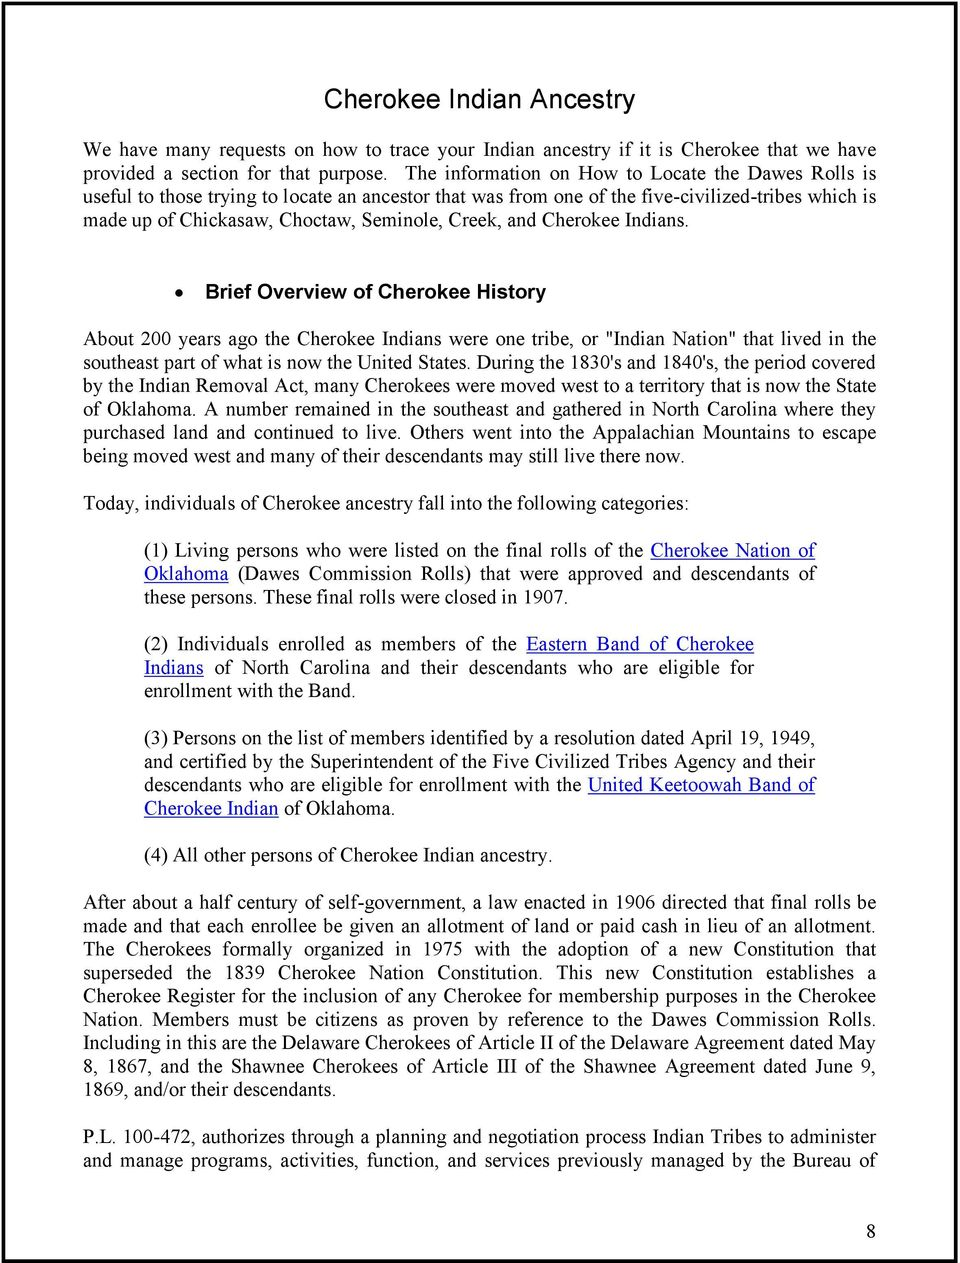 Guide to Tracing Your American Indian Ancestry - PDF